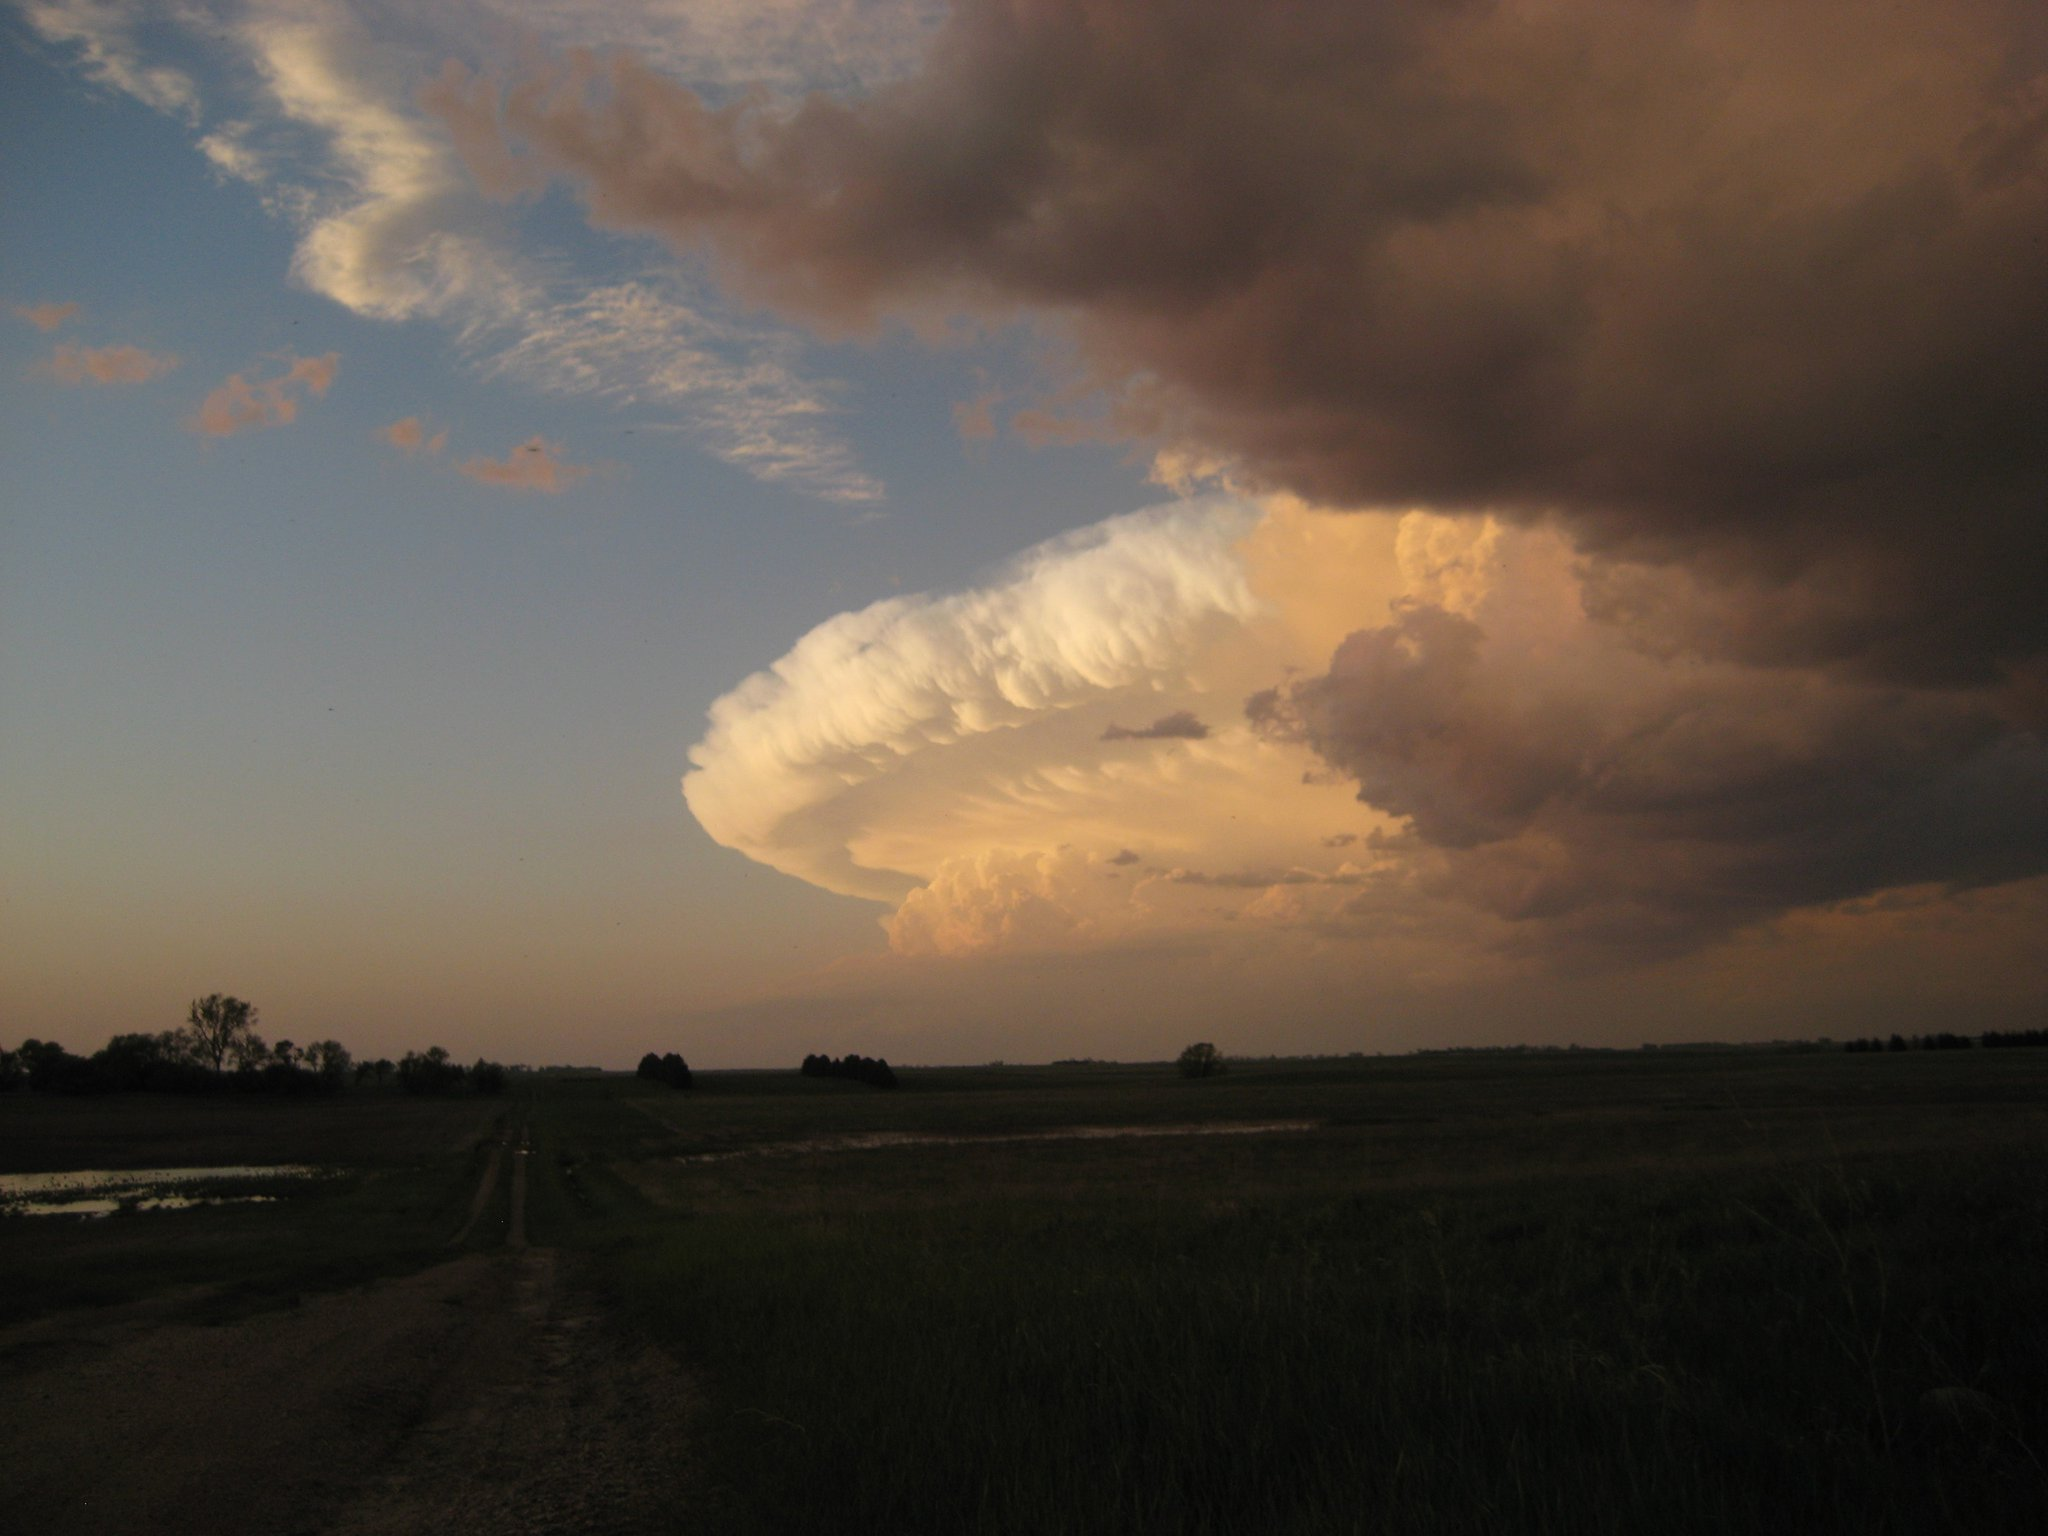 Supercell at sunset near Minot, ND